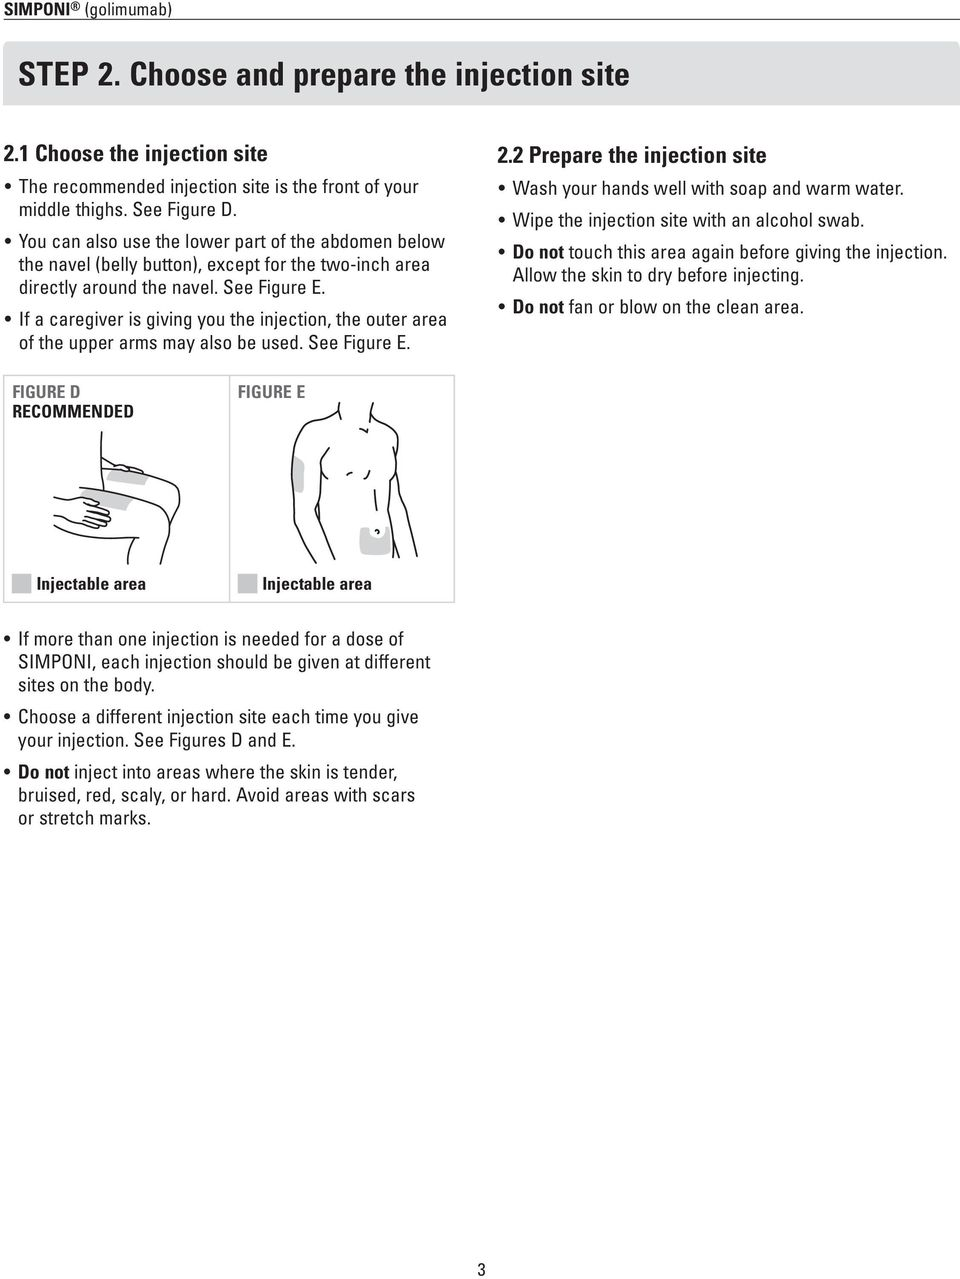 If a caregiver is giving you the injection, the outer area of the upper arms may also be used. See Figure E. 2.2 Prepare the injection site Wash your hands well with soap and warm water.